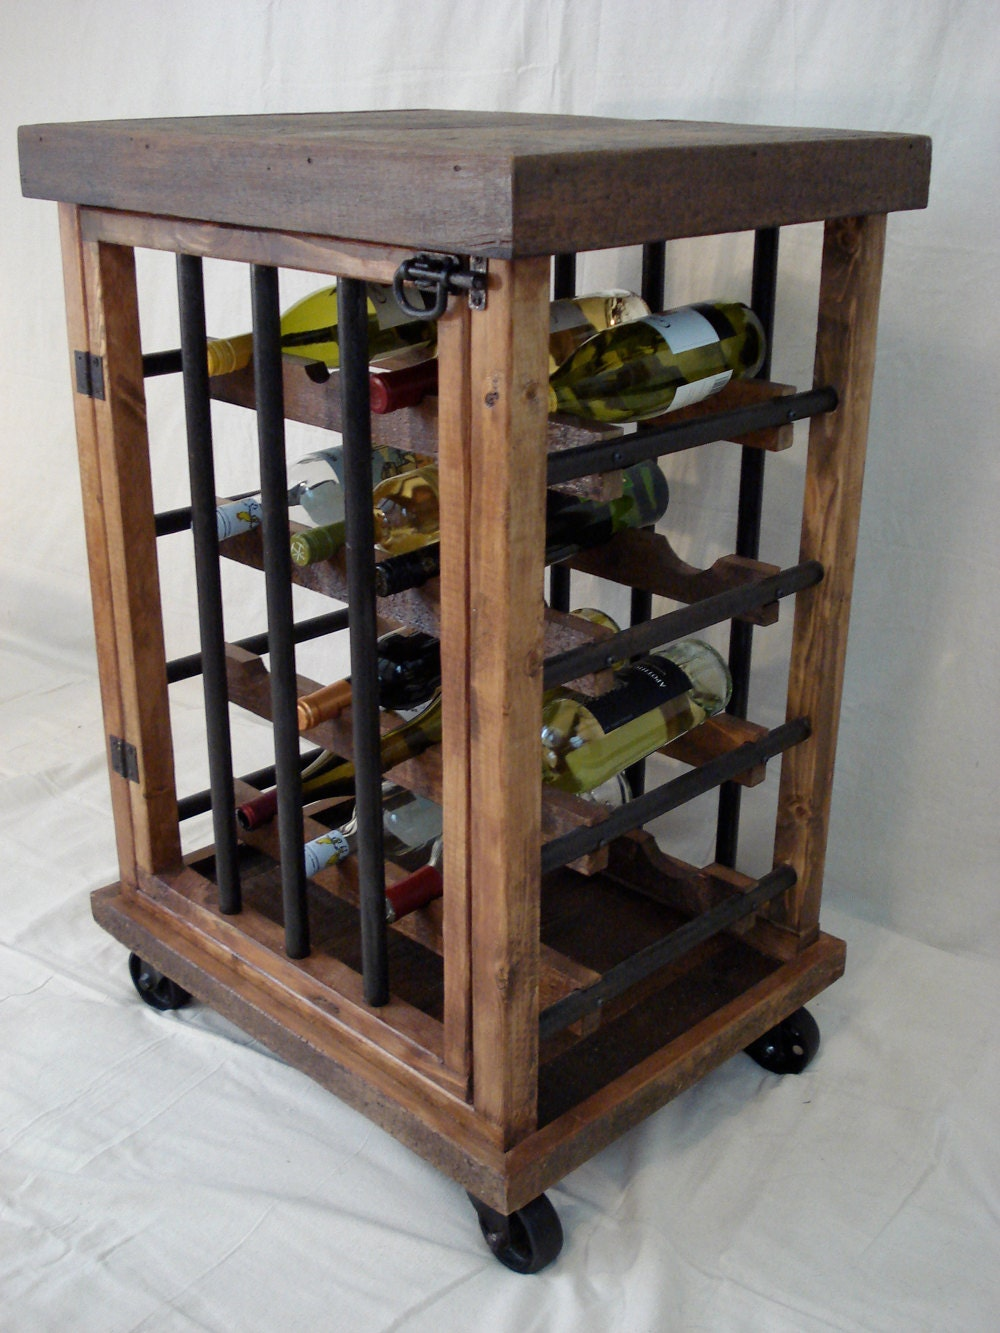 Rustic Wine Bottle Cabinet. Gallery Photo Gallery Photo ...